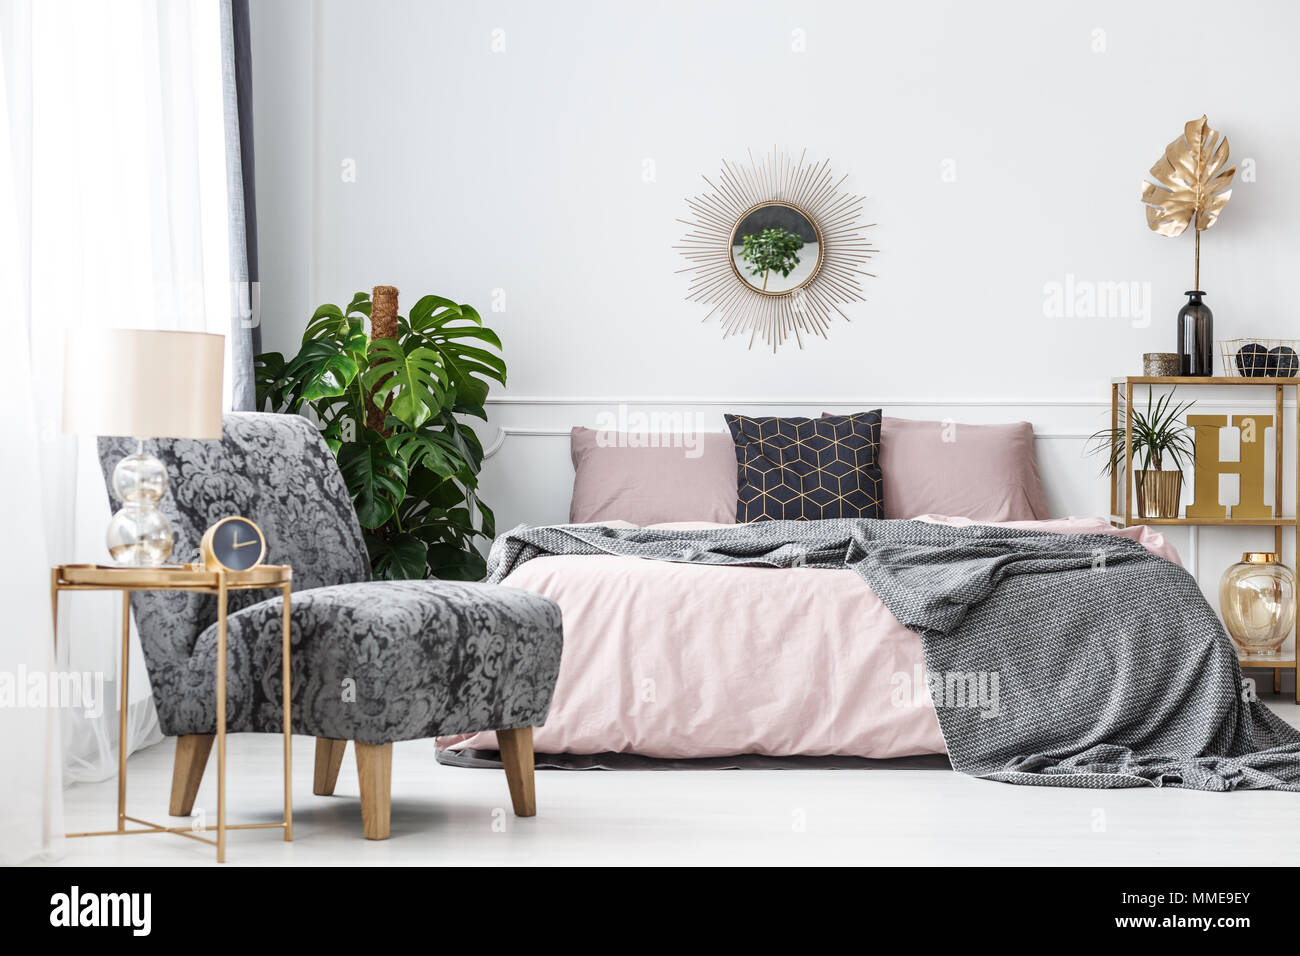 White Hotel Bedroom Interior With Pink Gray And Gold Accents Such As A Mirror Armchair Or Table Stock Photo Alamy